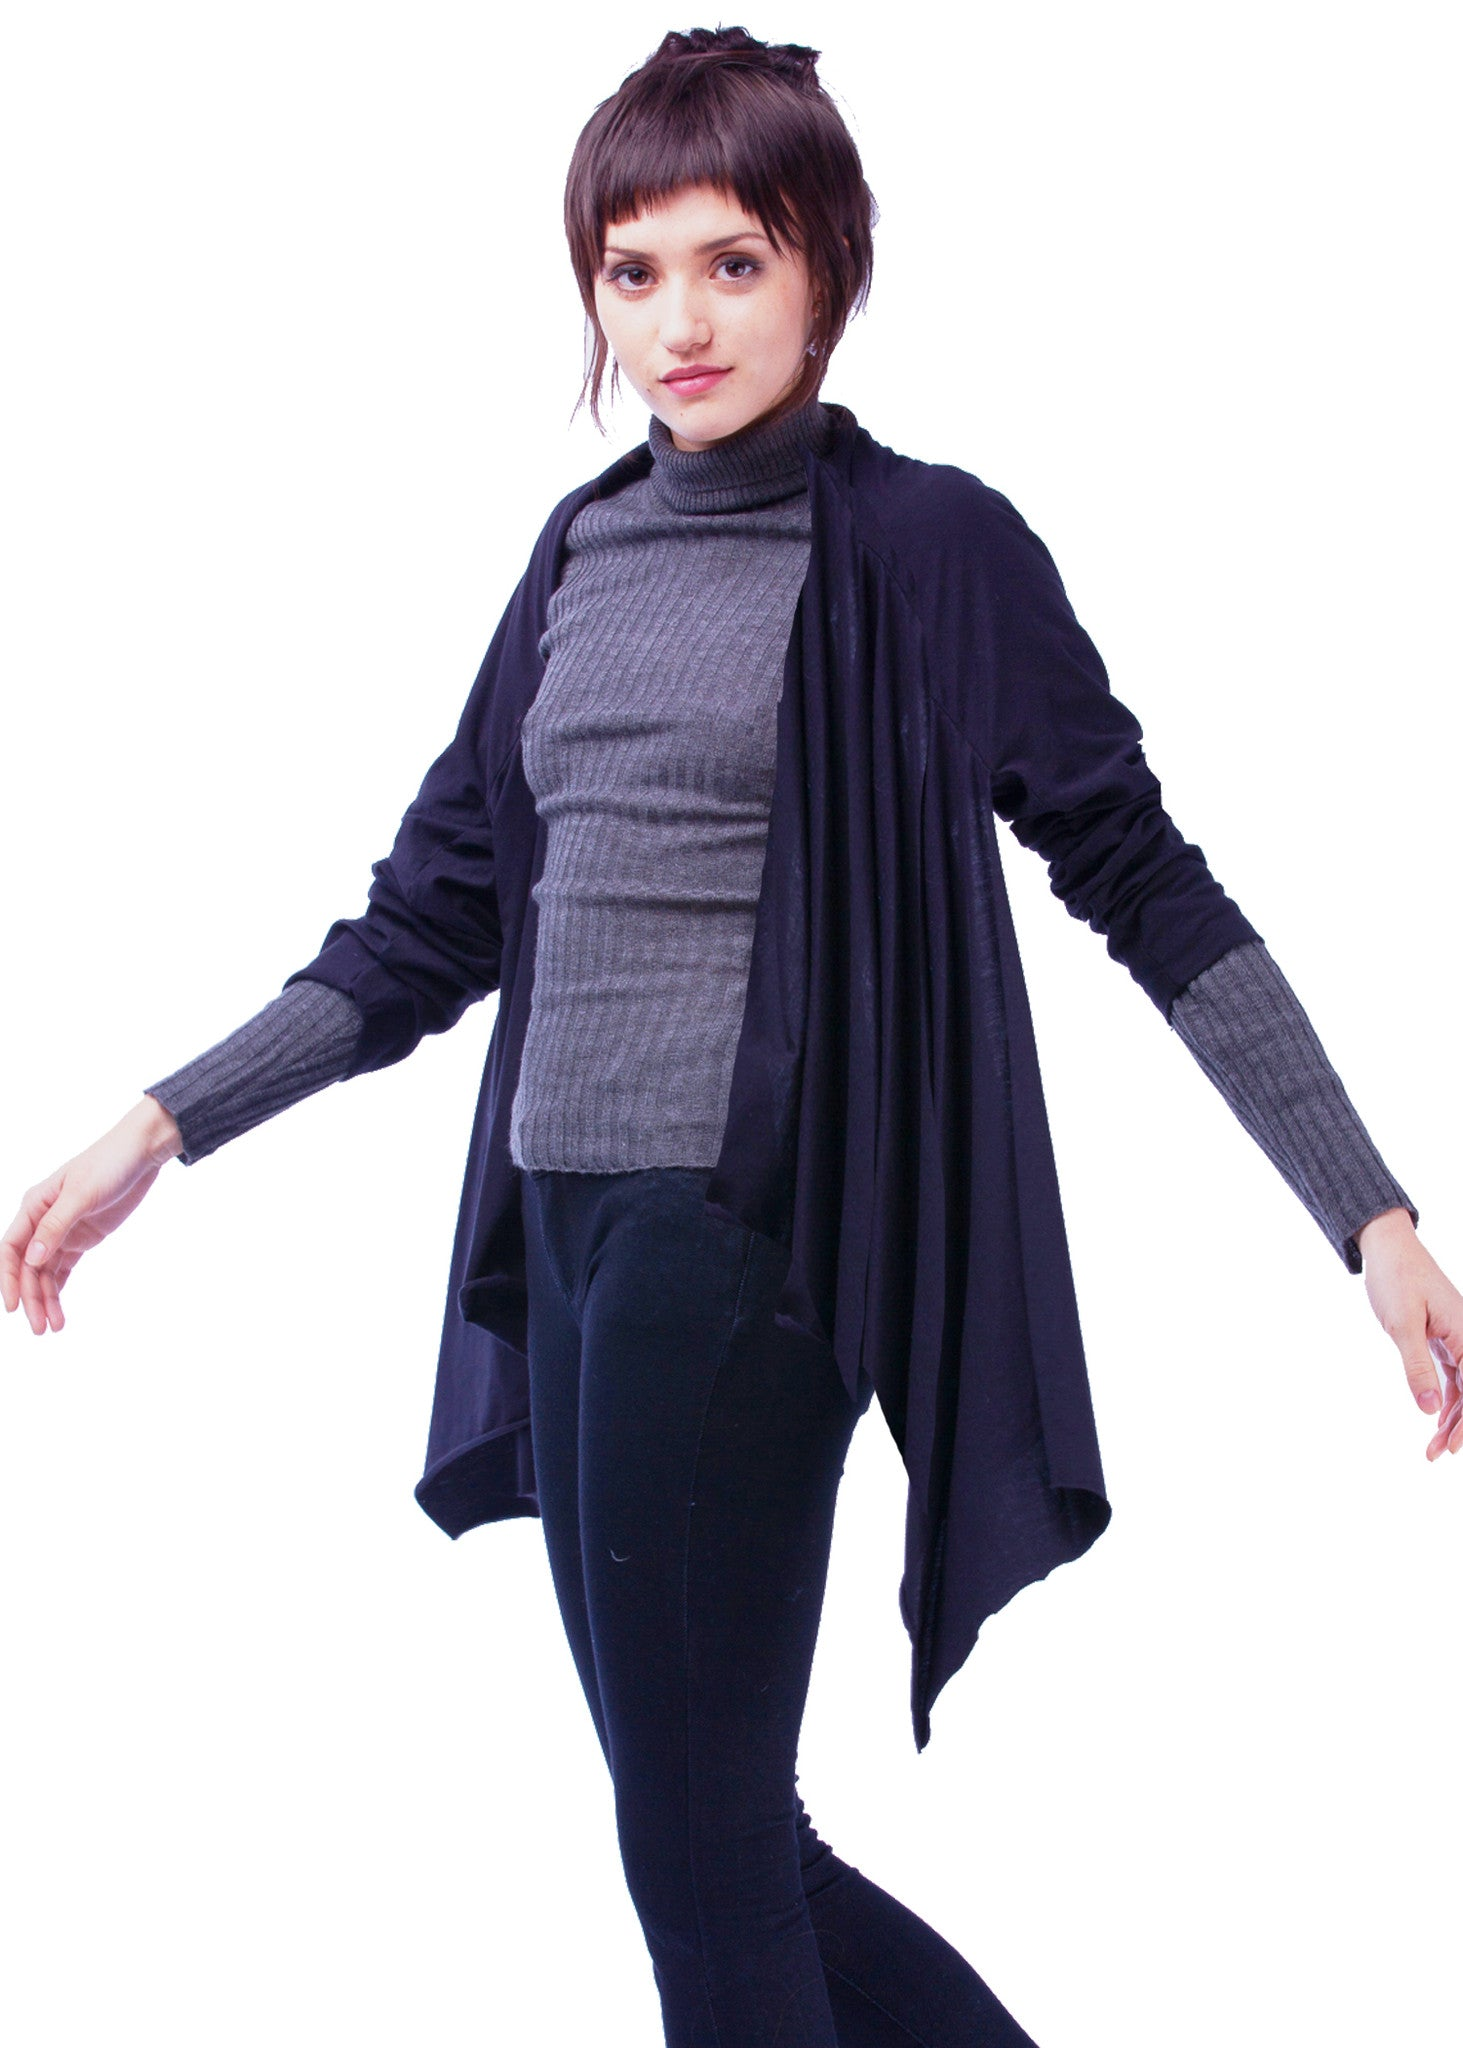 Carrie City Shawl, 100% Cotton, Black